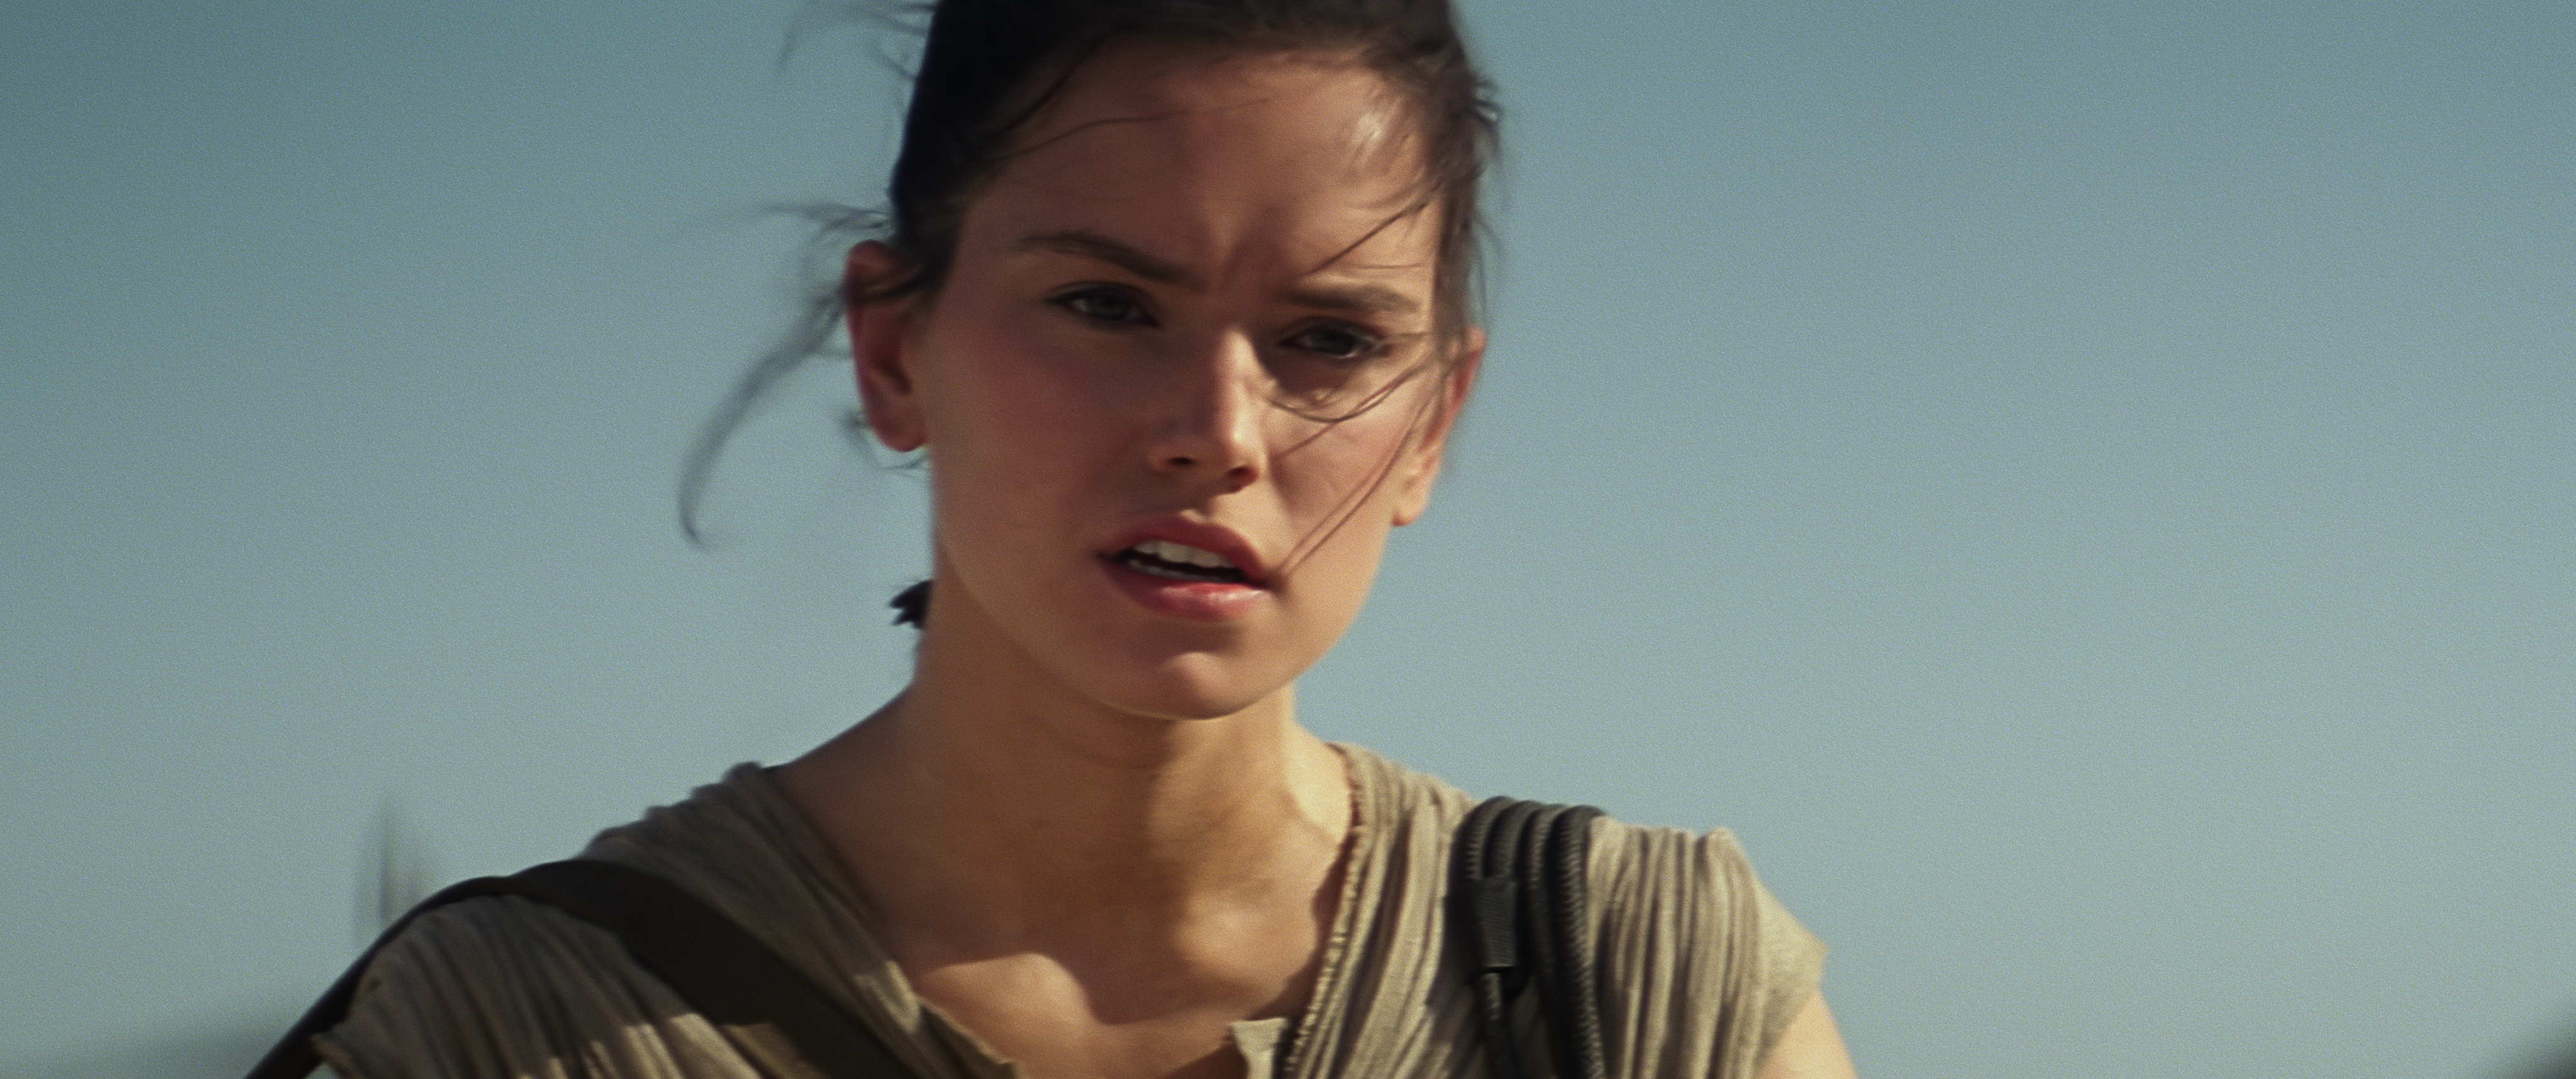 <p>Star Wars: The Force Awakens</p><p>Ph: Film Frame</p><p>©Lucasfilm 2015</p>